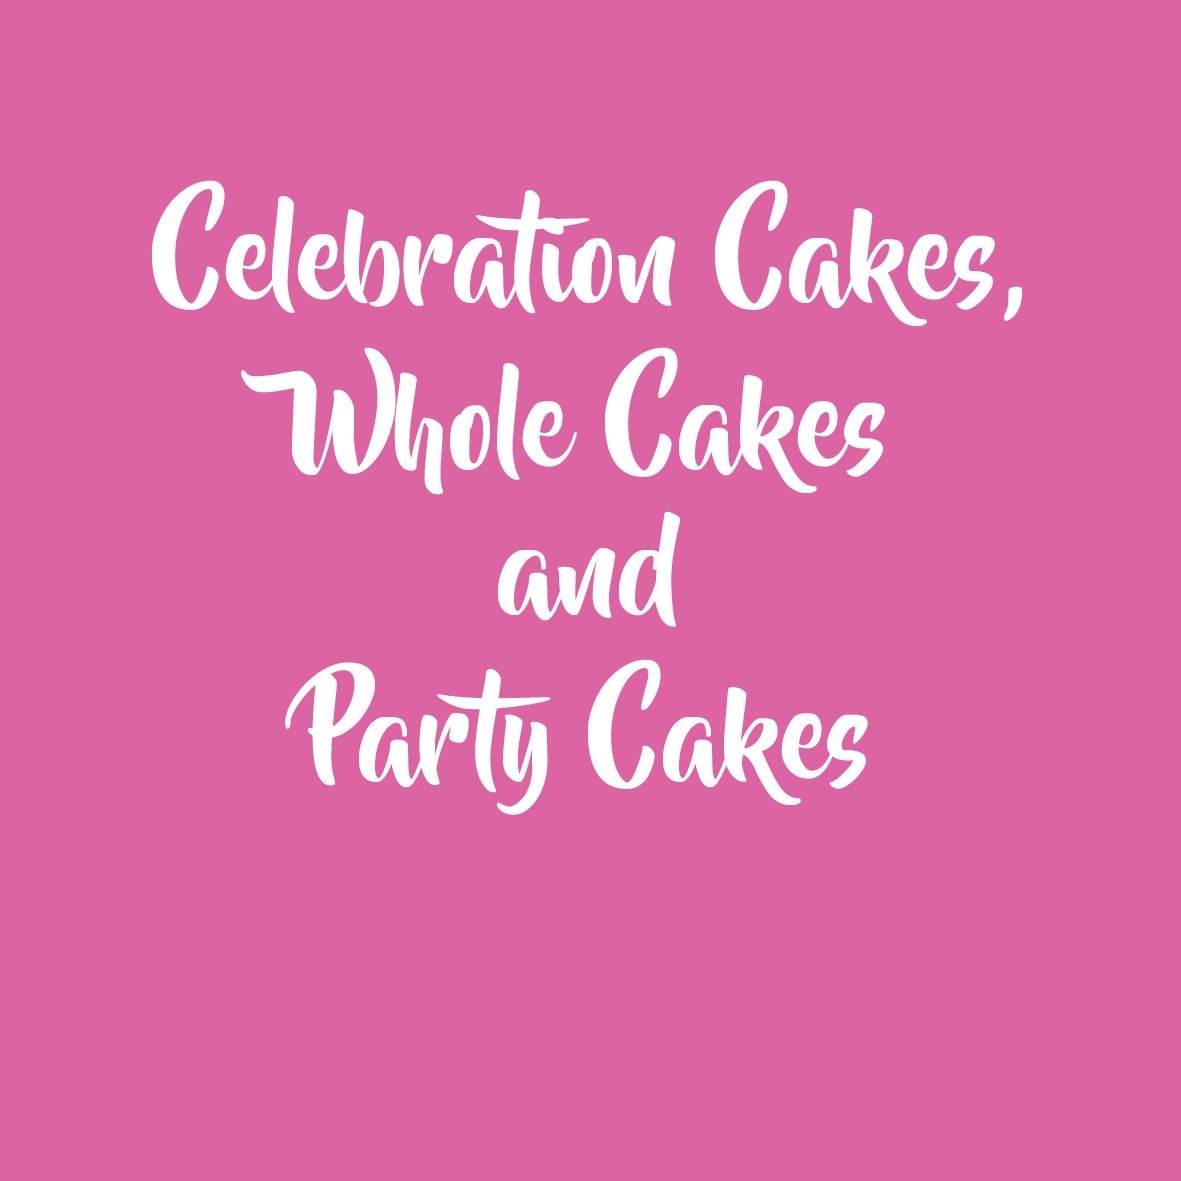 Whole cakes, celebration and party cakes